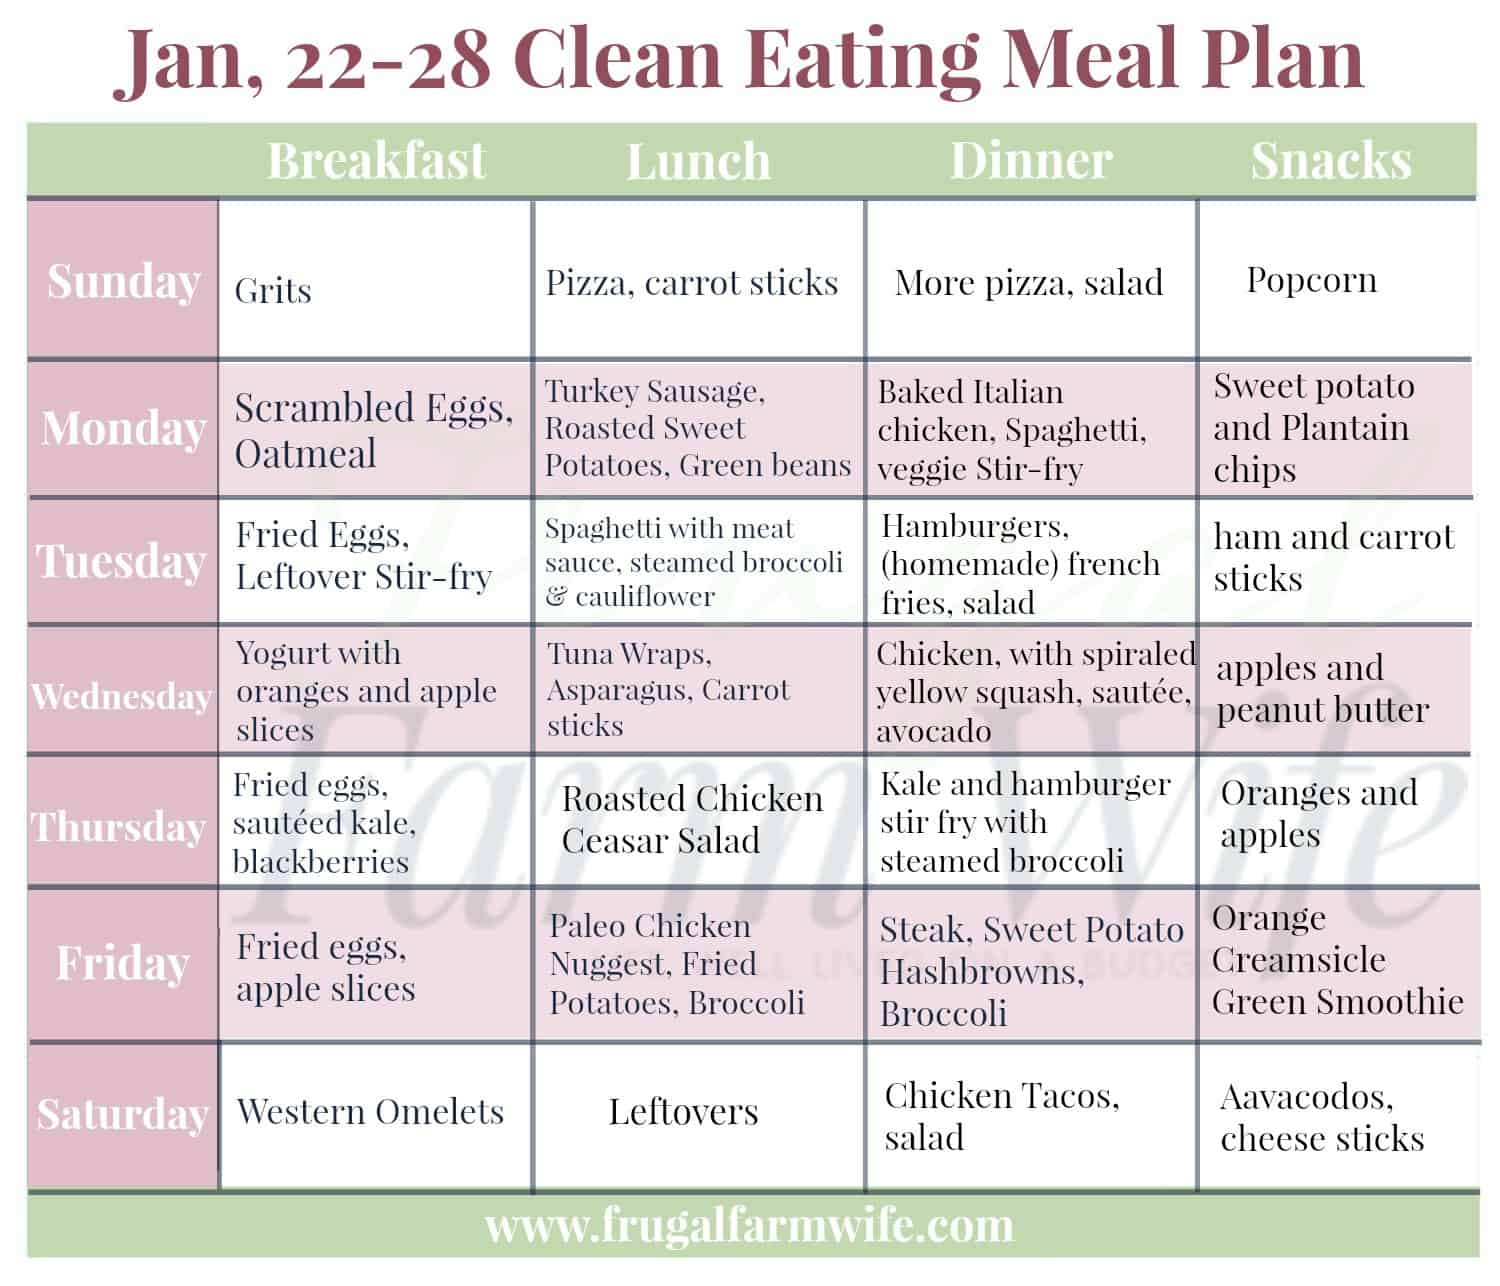 Whole30 Prep Meal Plan: Getting Ready! | The Frugal Farm Wife